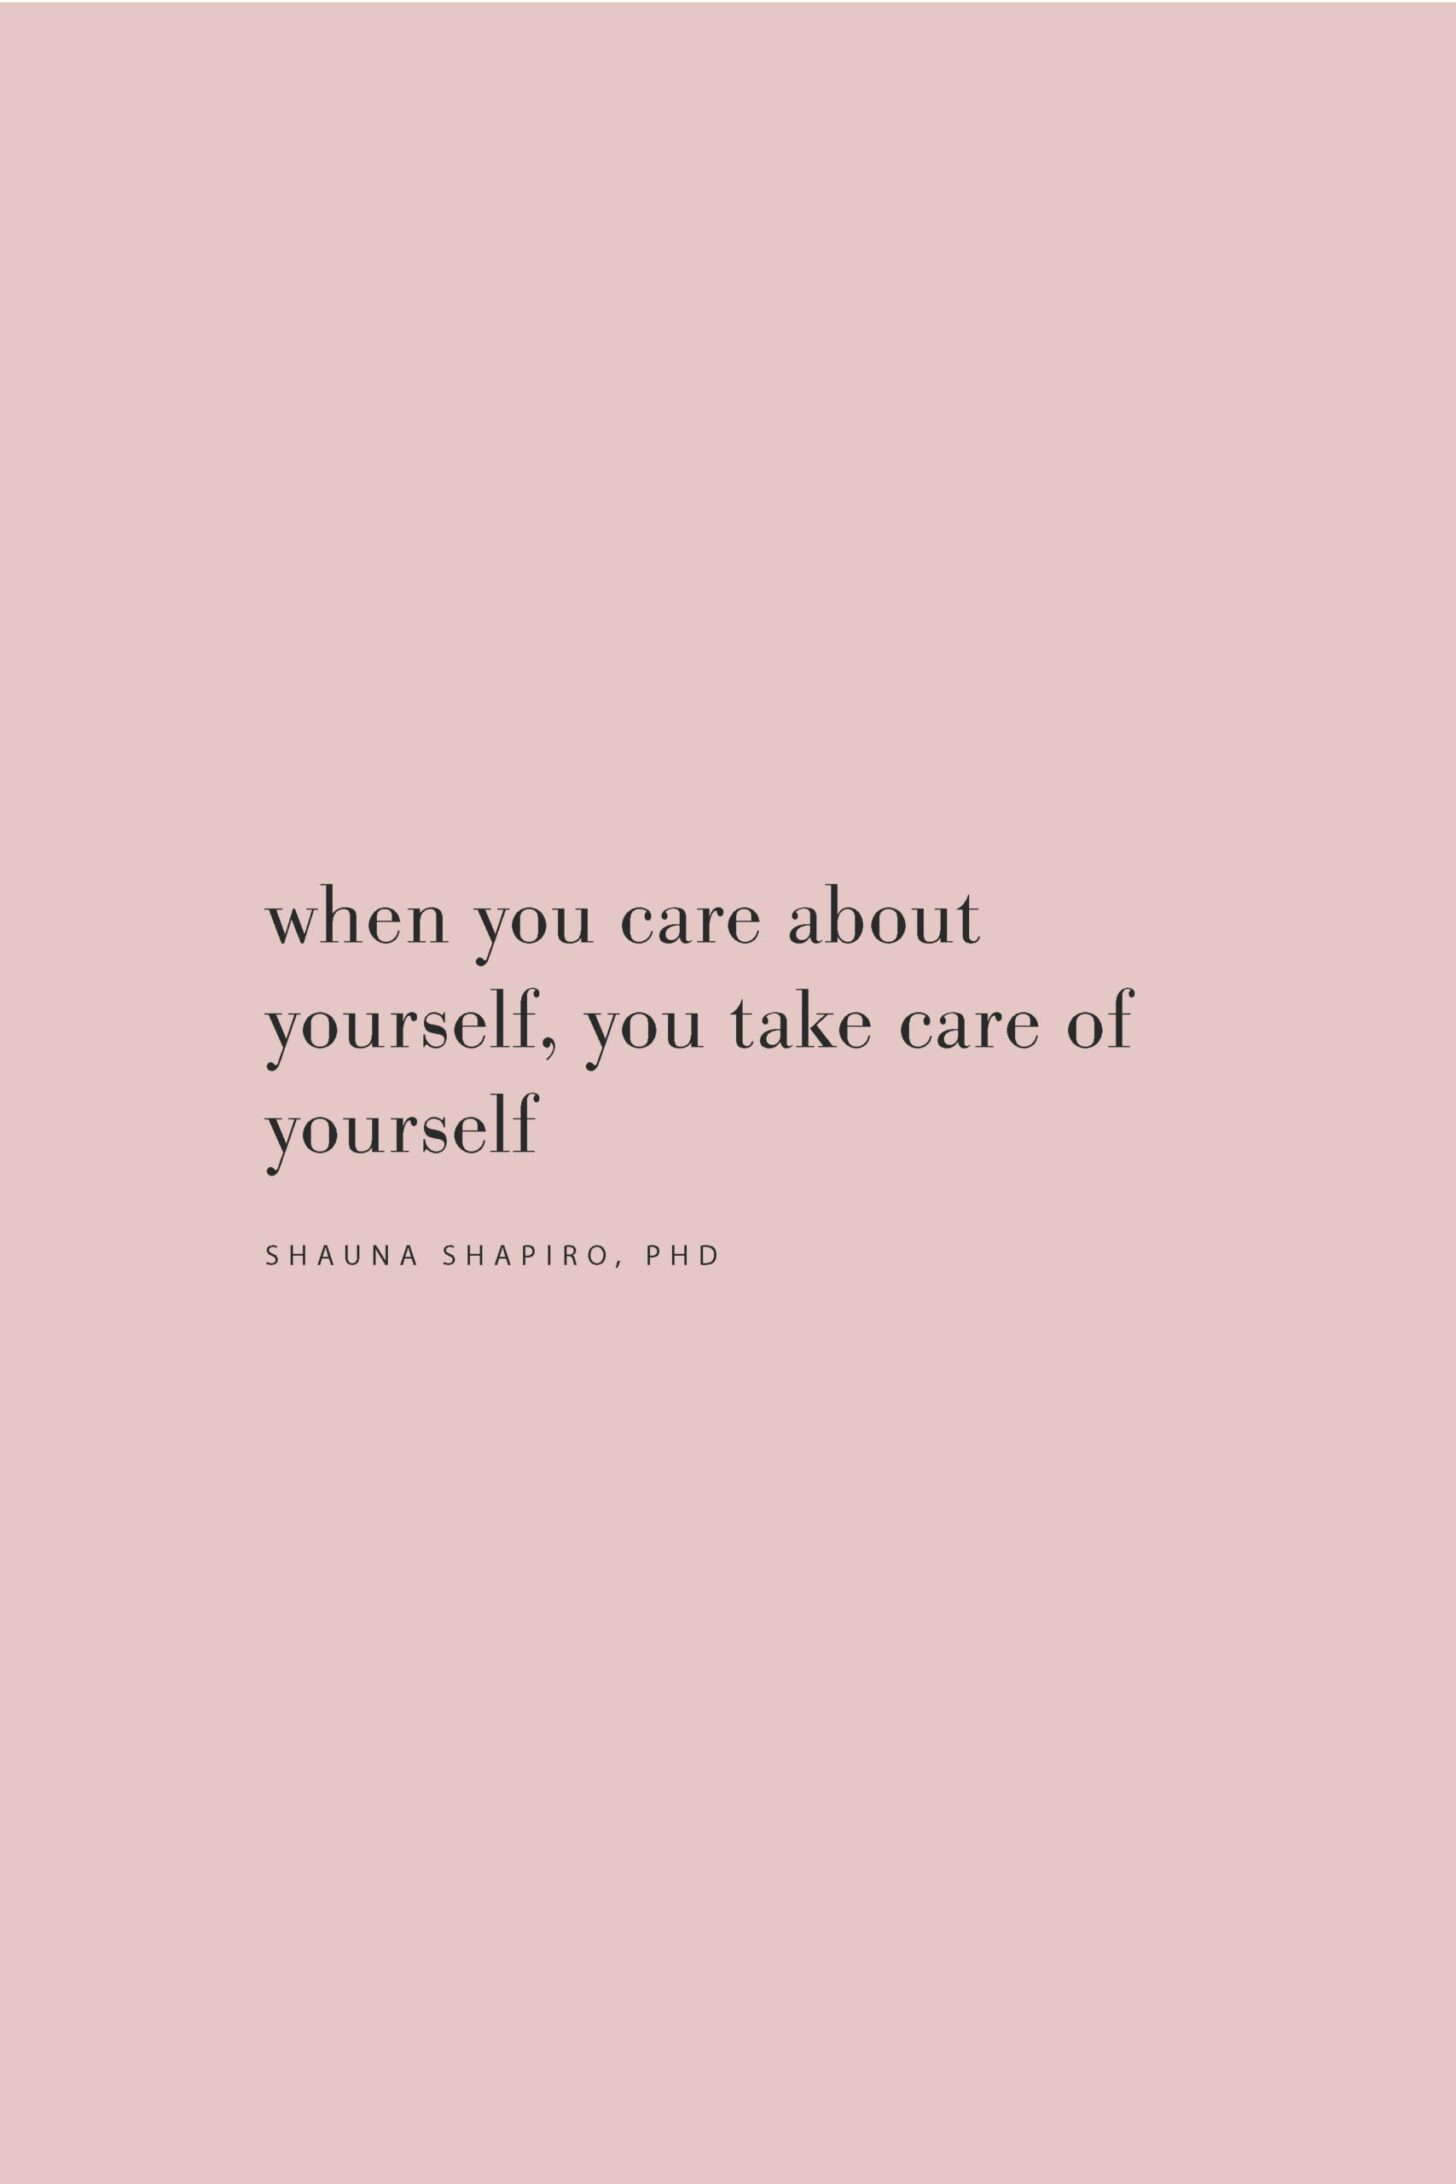 Quote on caring for yourself by Shauna Shapiro, PhD on the Feel Good Effect Podcast #realfoodwholelife #feelgoodeffectpodcast #selfcompassionquote #selflovequote #selfkindnessquote #selfcarequote #motivationalquote #inspirationalquote #positivityquote